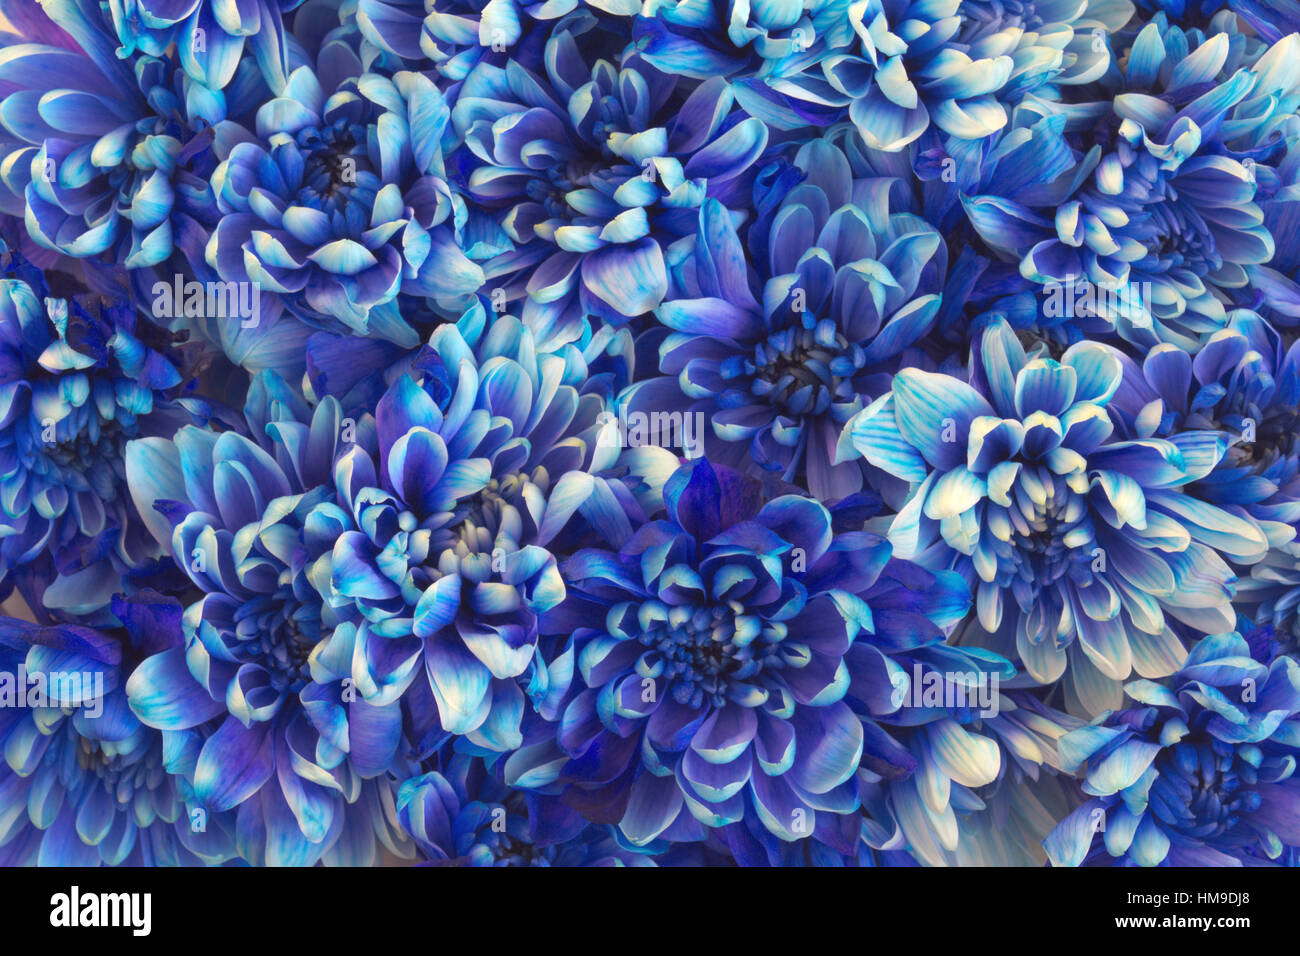 Beautiful Flower Background With A Lot Of Blue Chrysanthemums